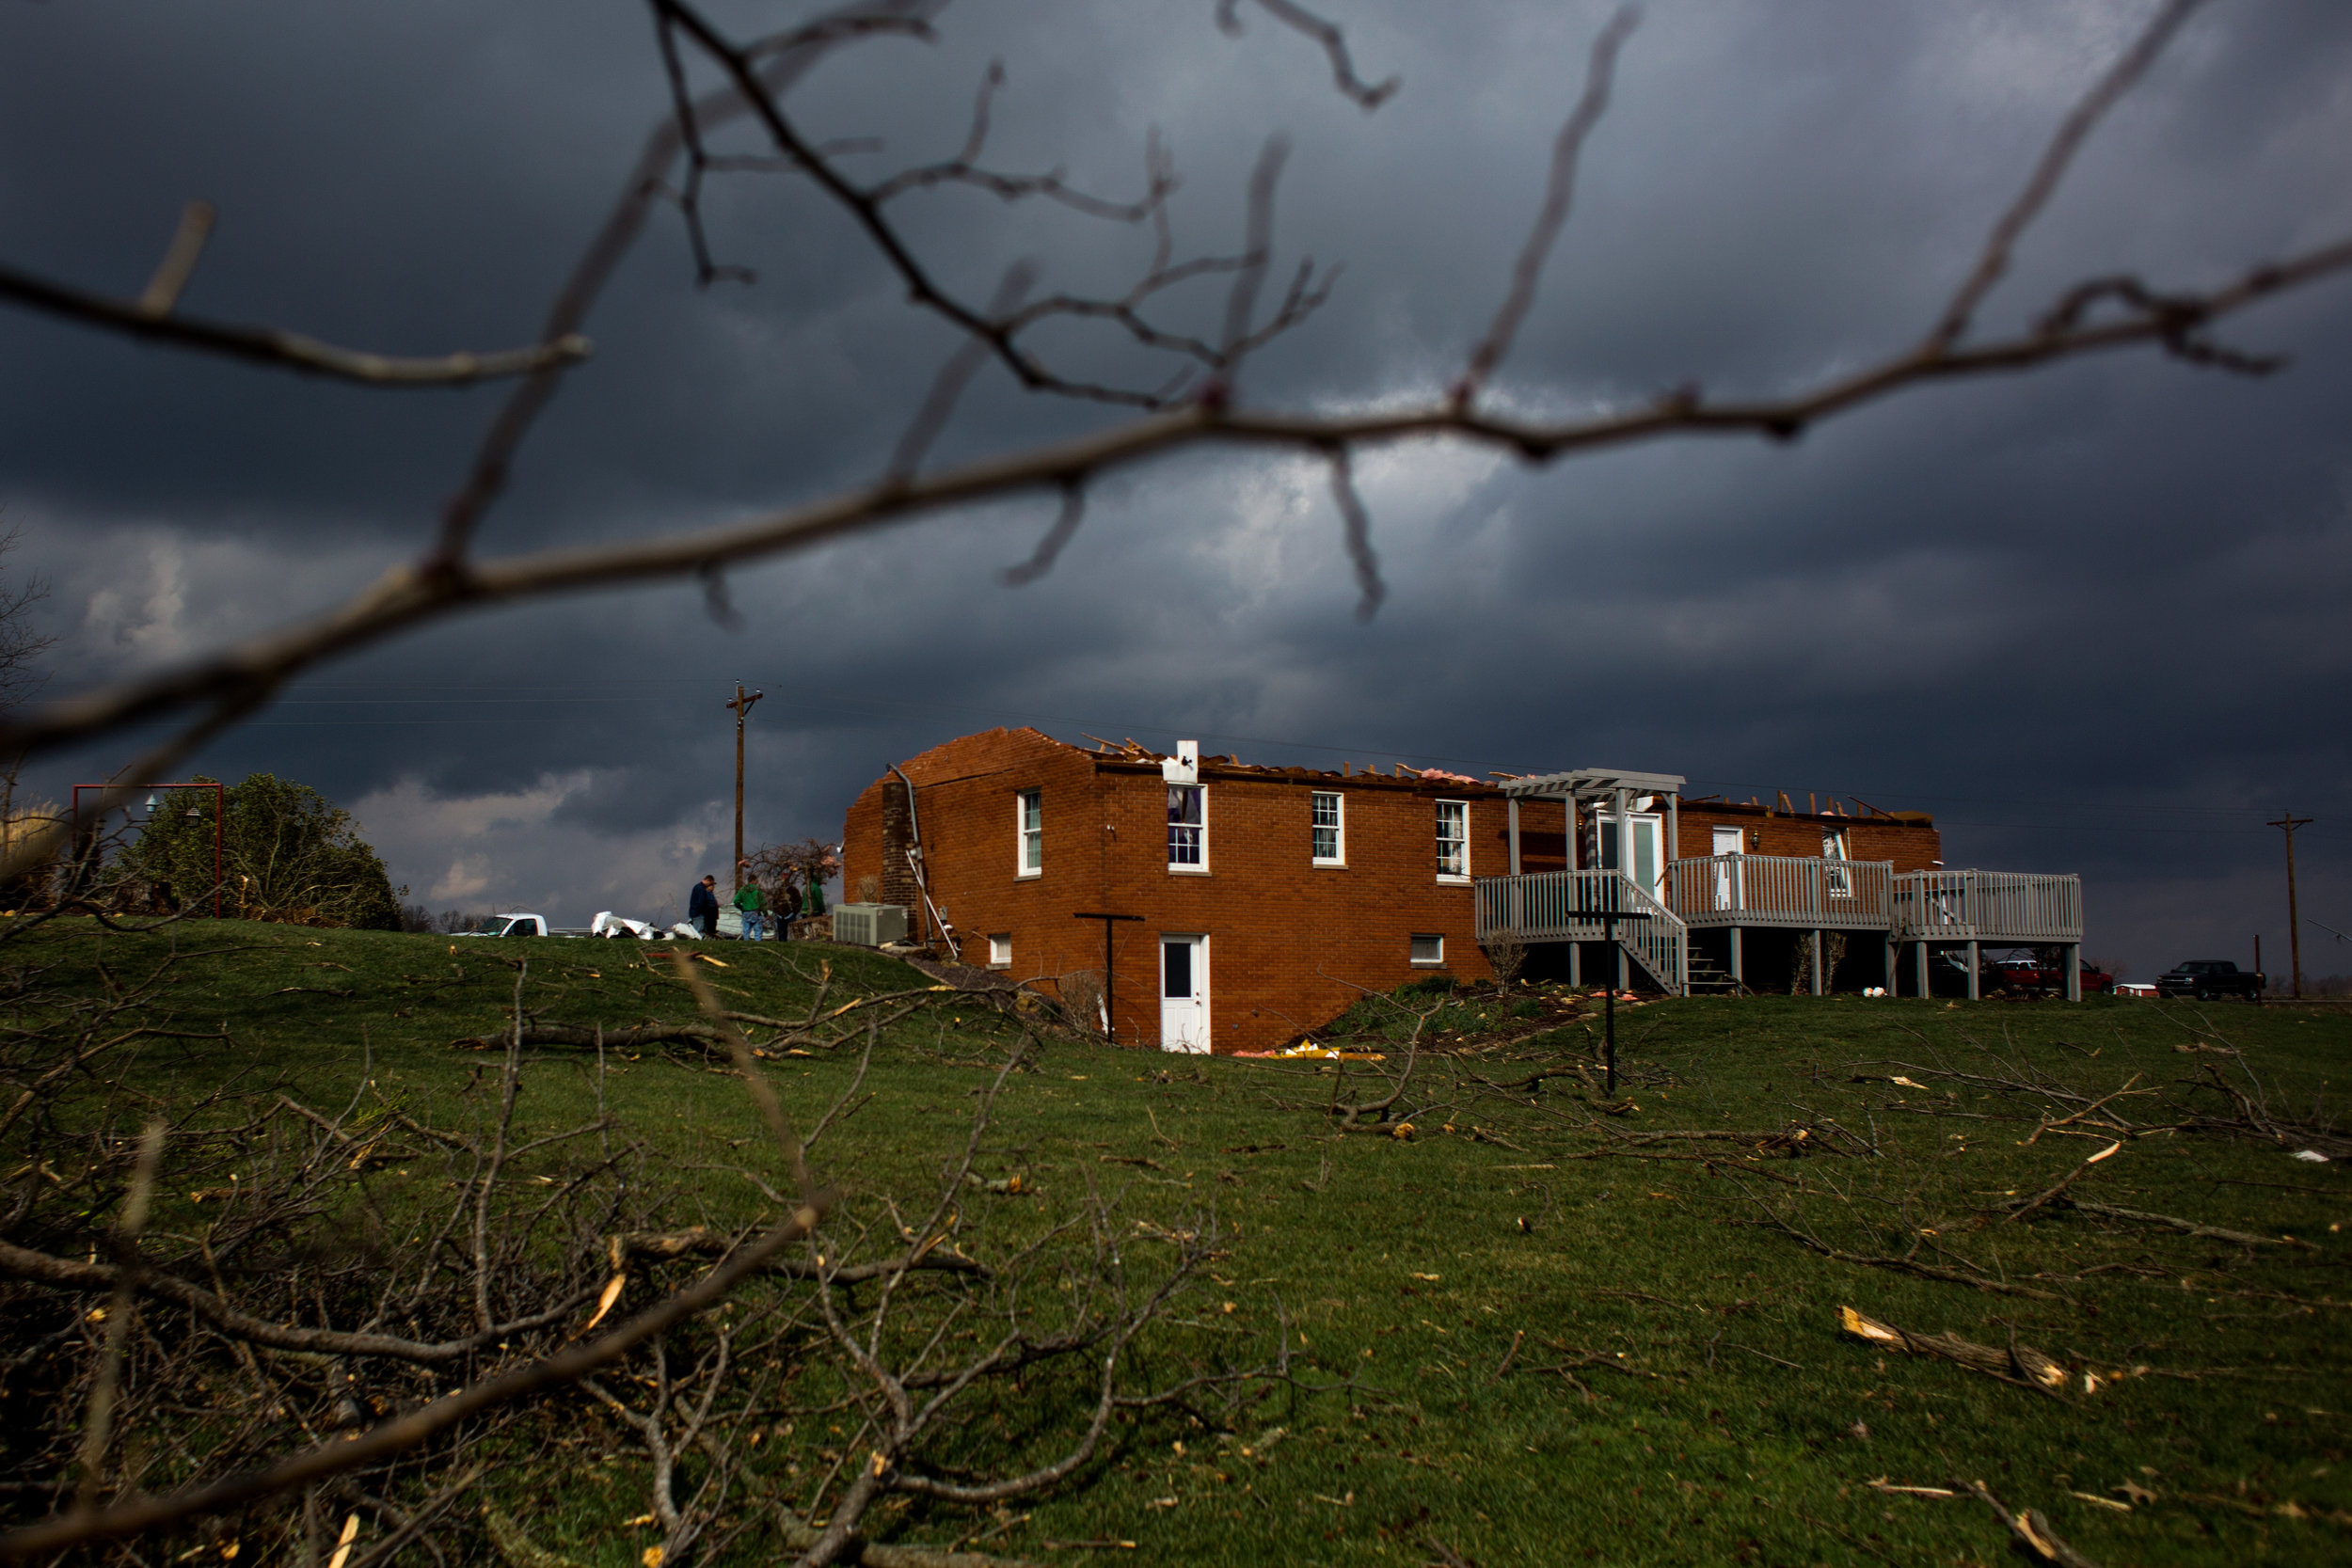 A tornado blew the roof off of Ed and Kathy Vollmer's home in Ireland Wednesday,March 1, 2017.